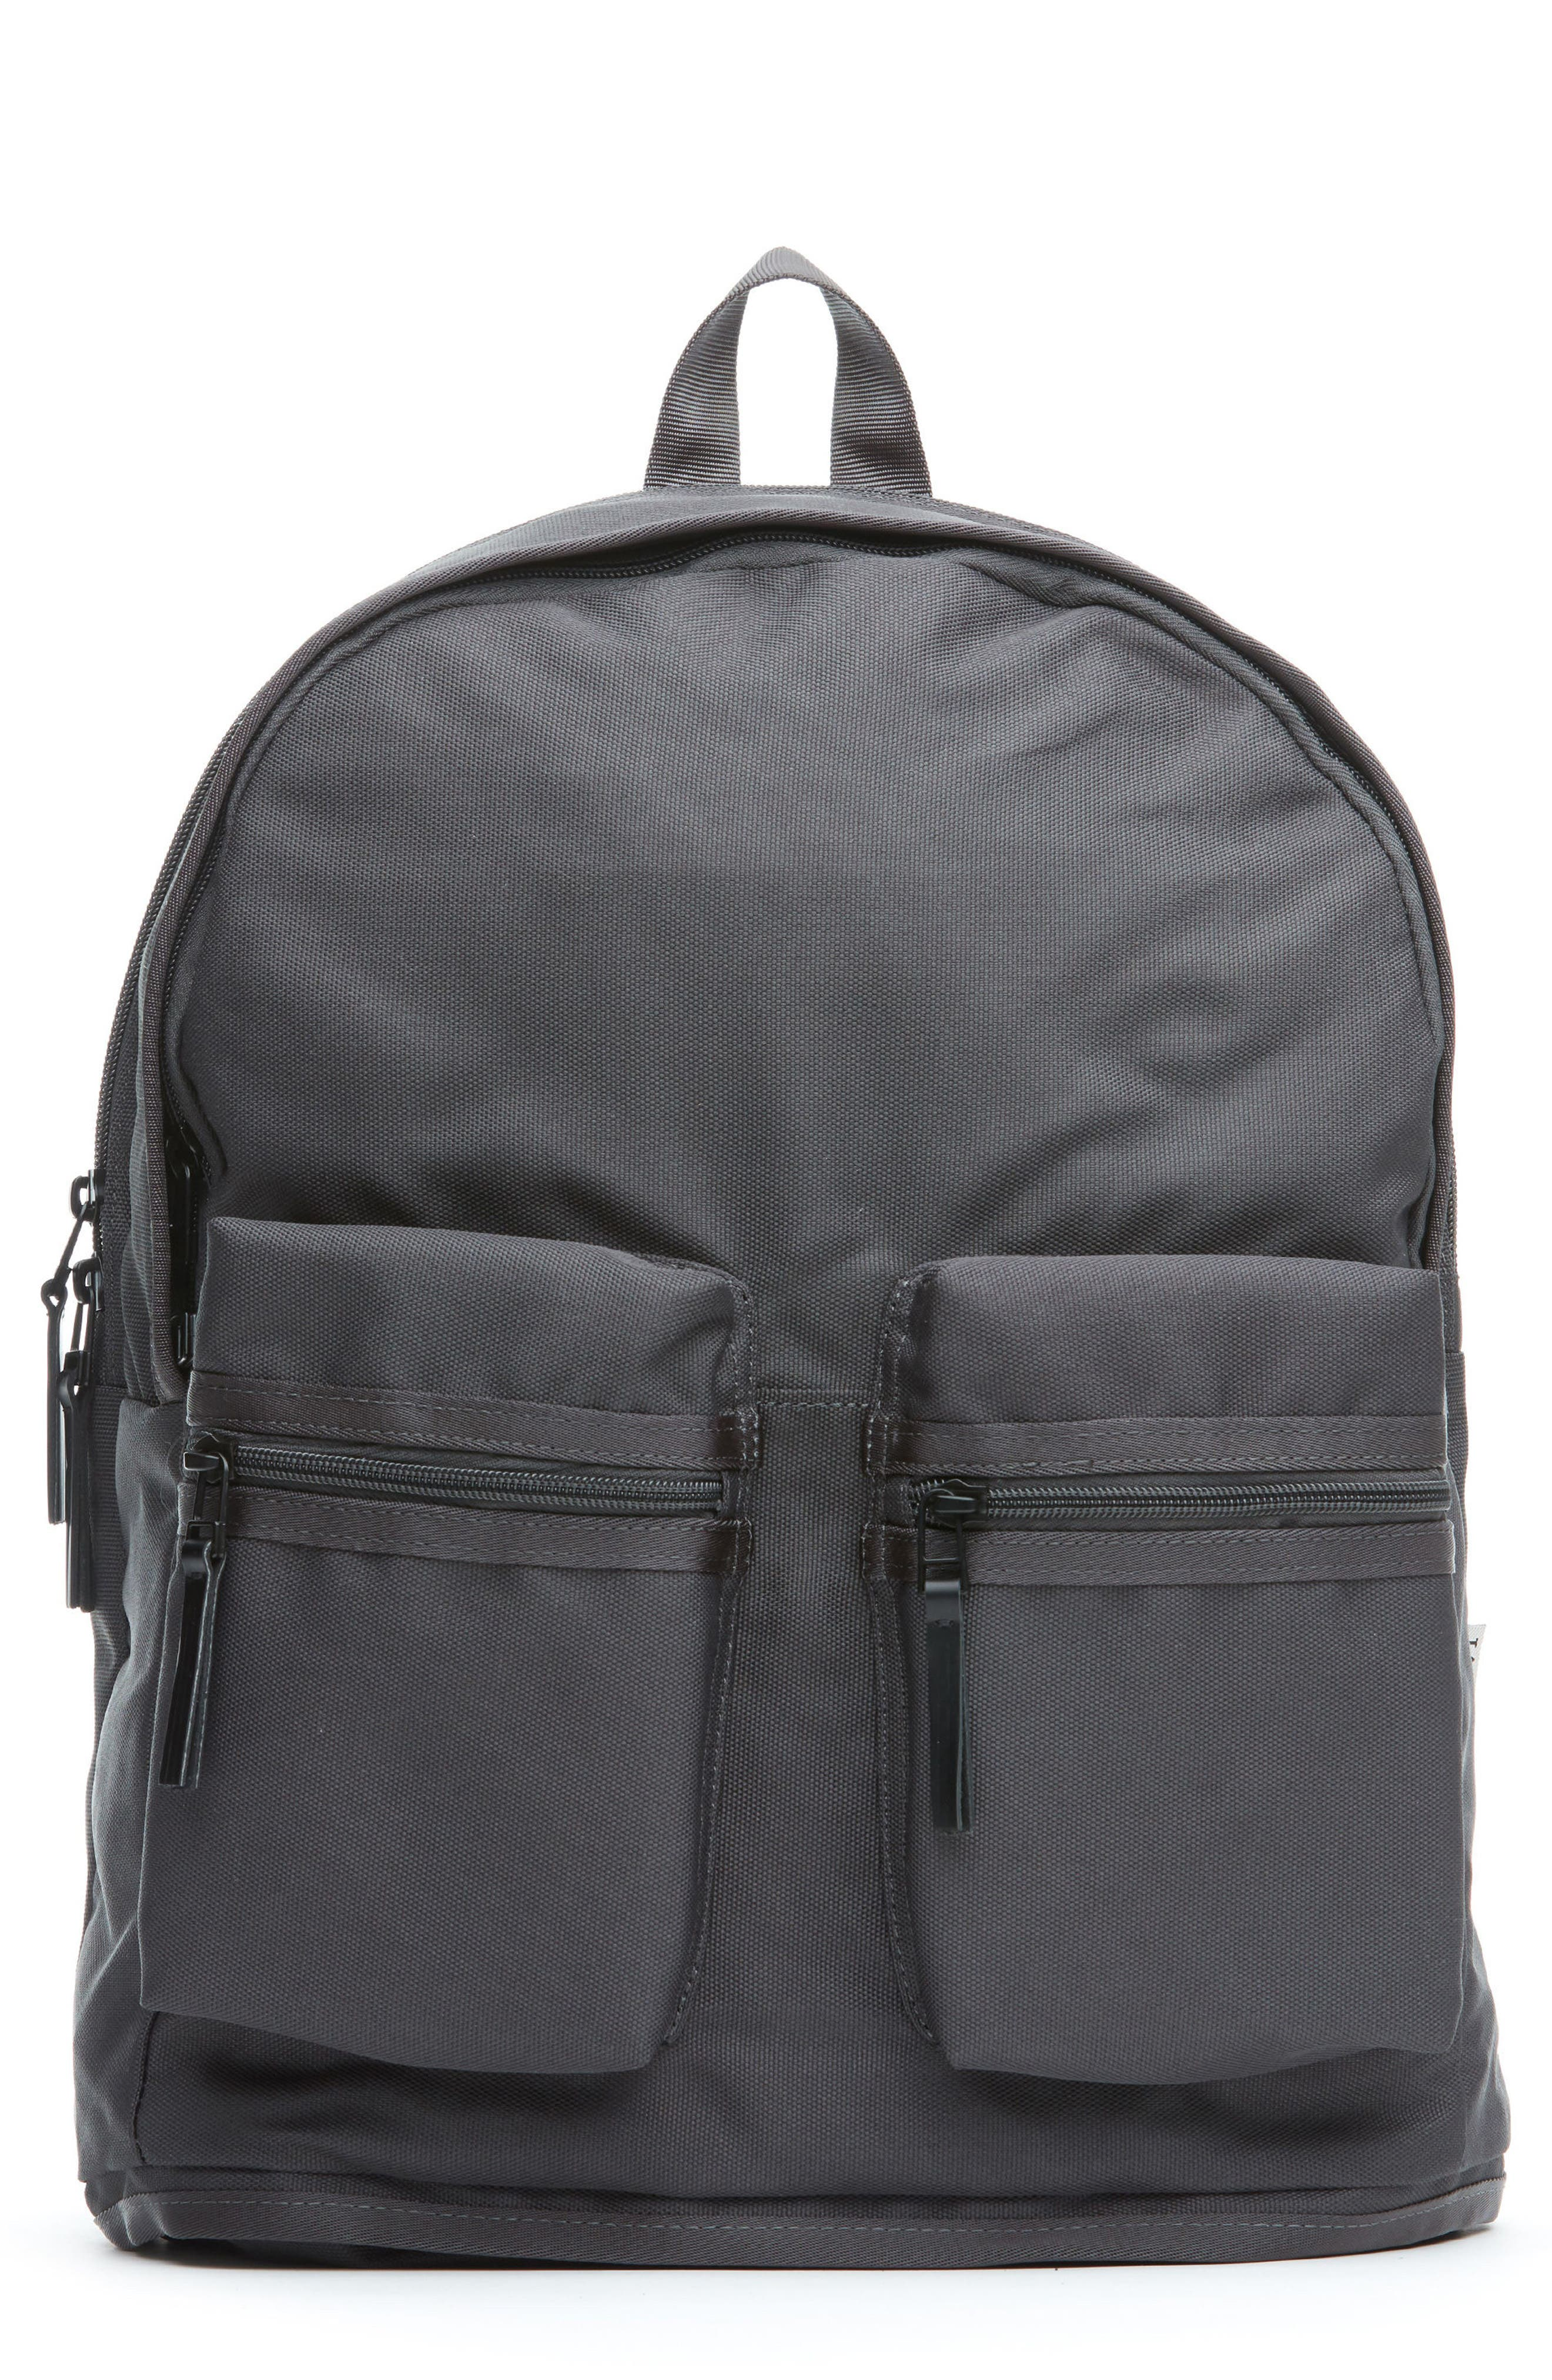 Spartan Backpack,                         Main,                         color, 021